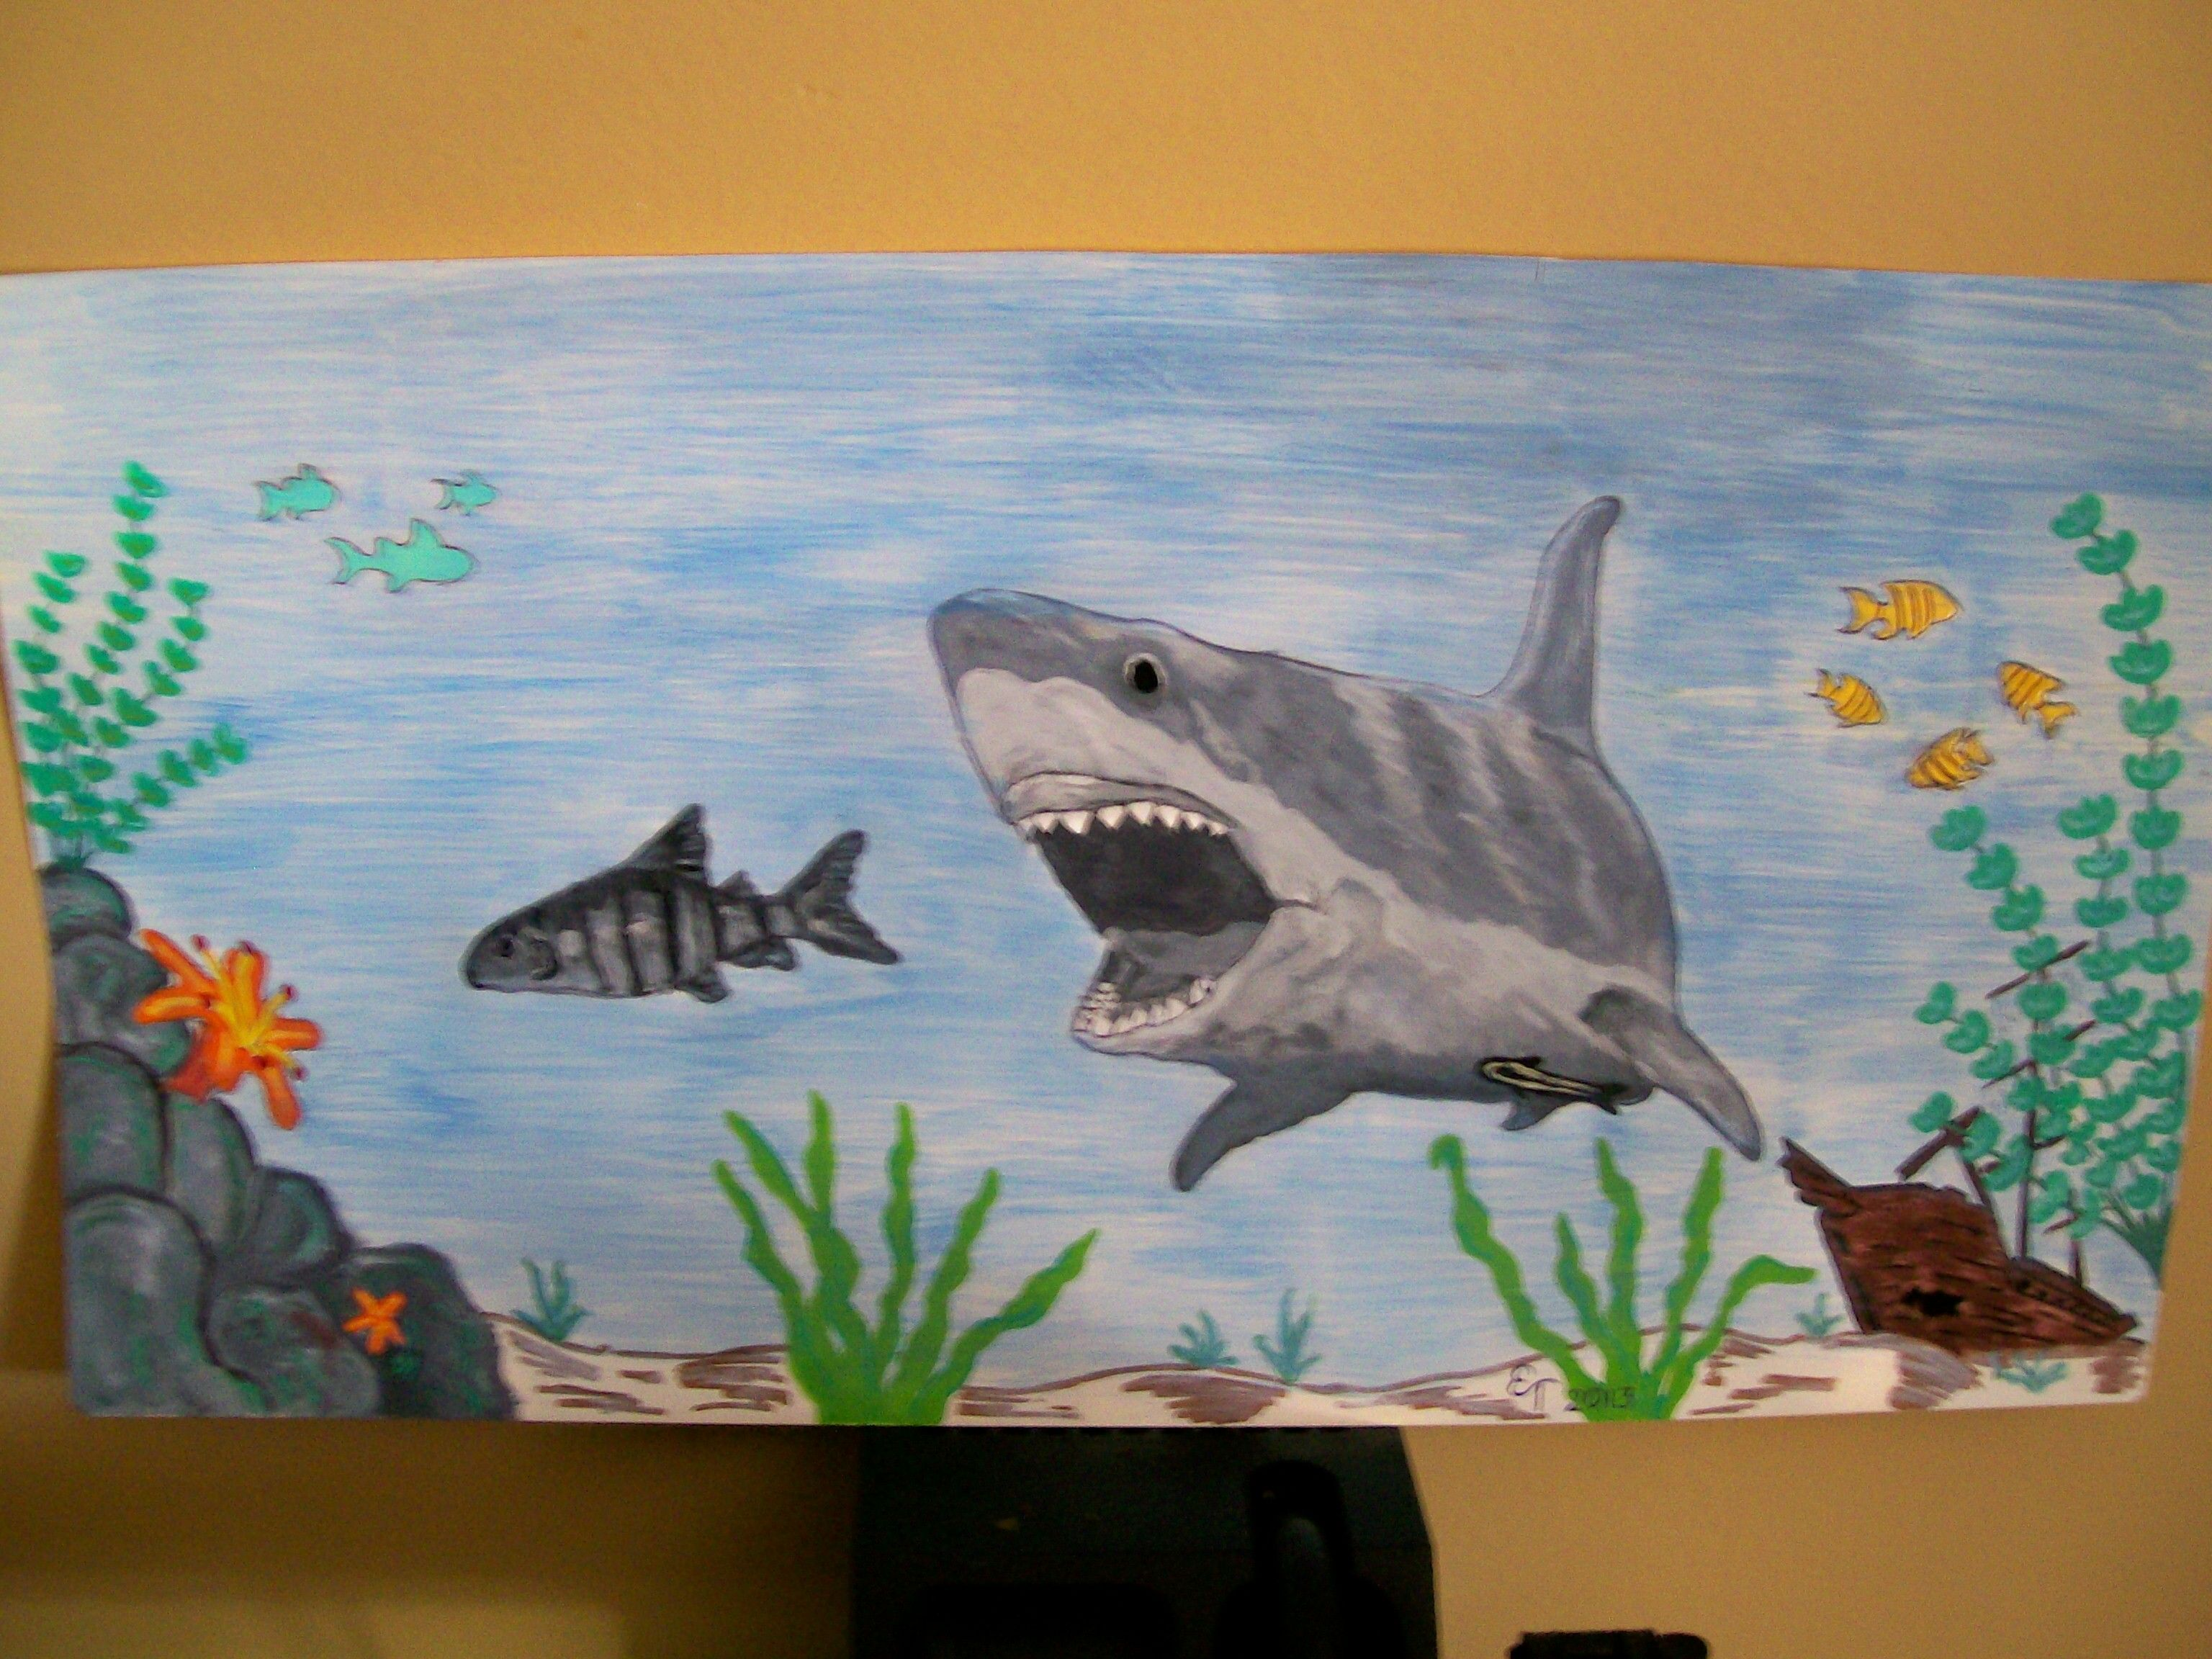 Fish tank painting - Shark Drawing Painting For My Fish Tank Background 2014 Done With Water Colors